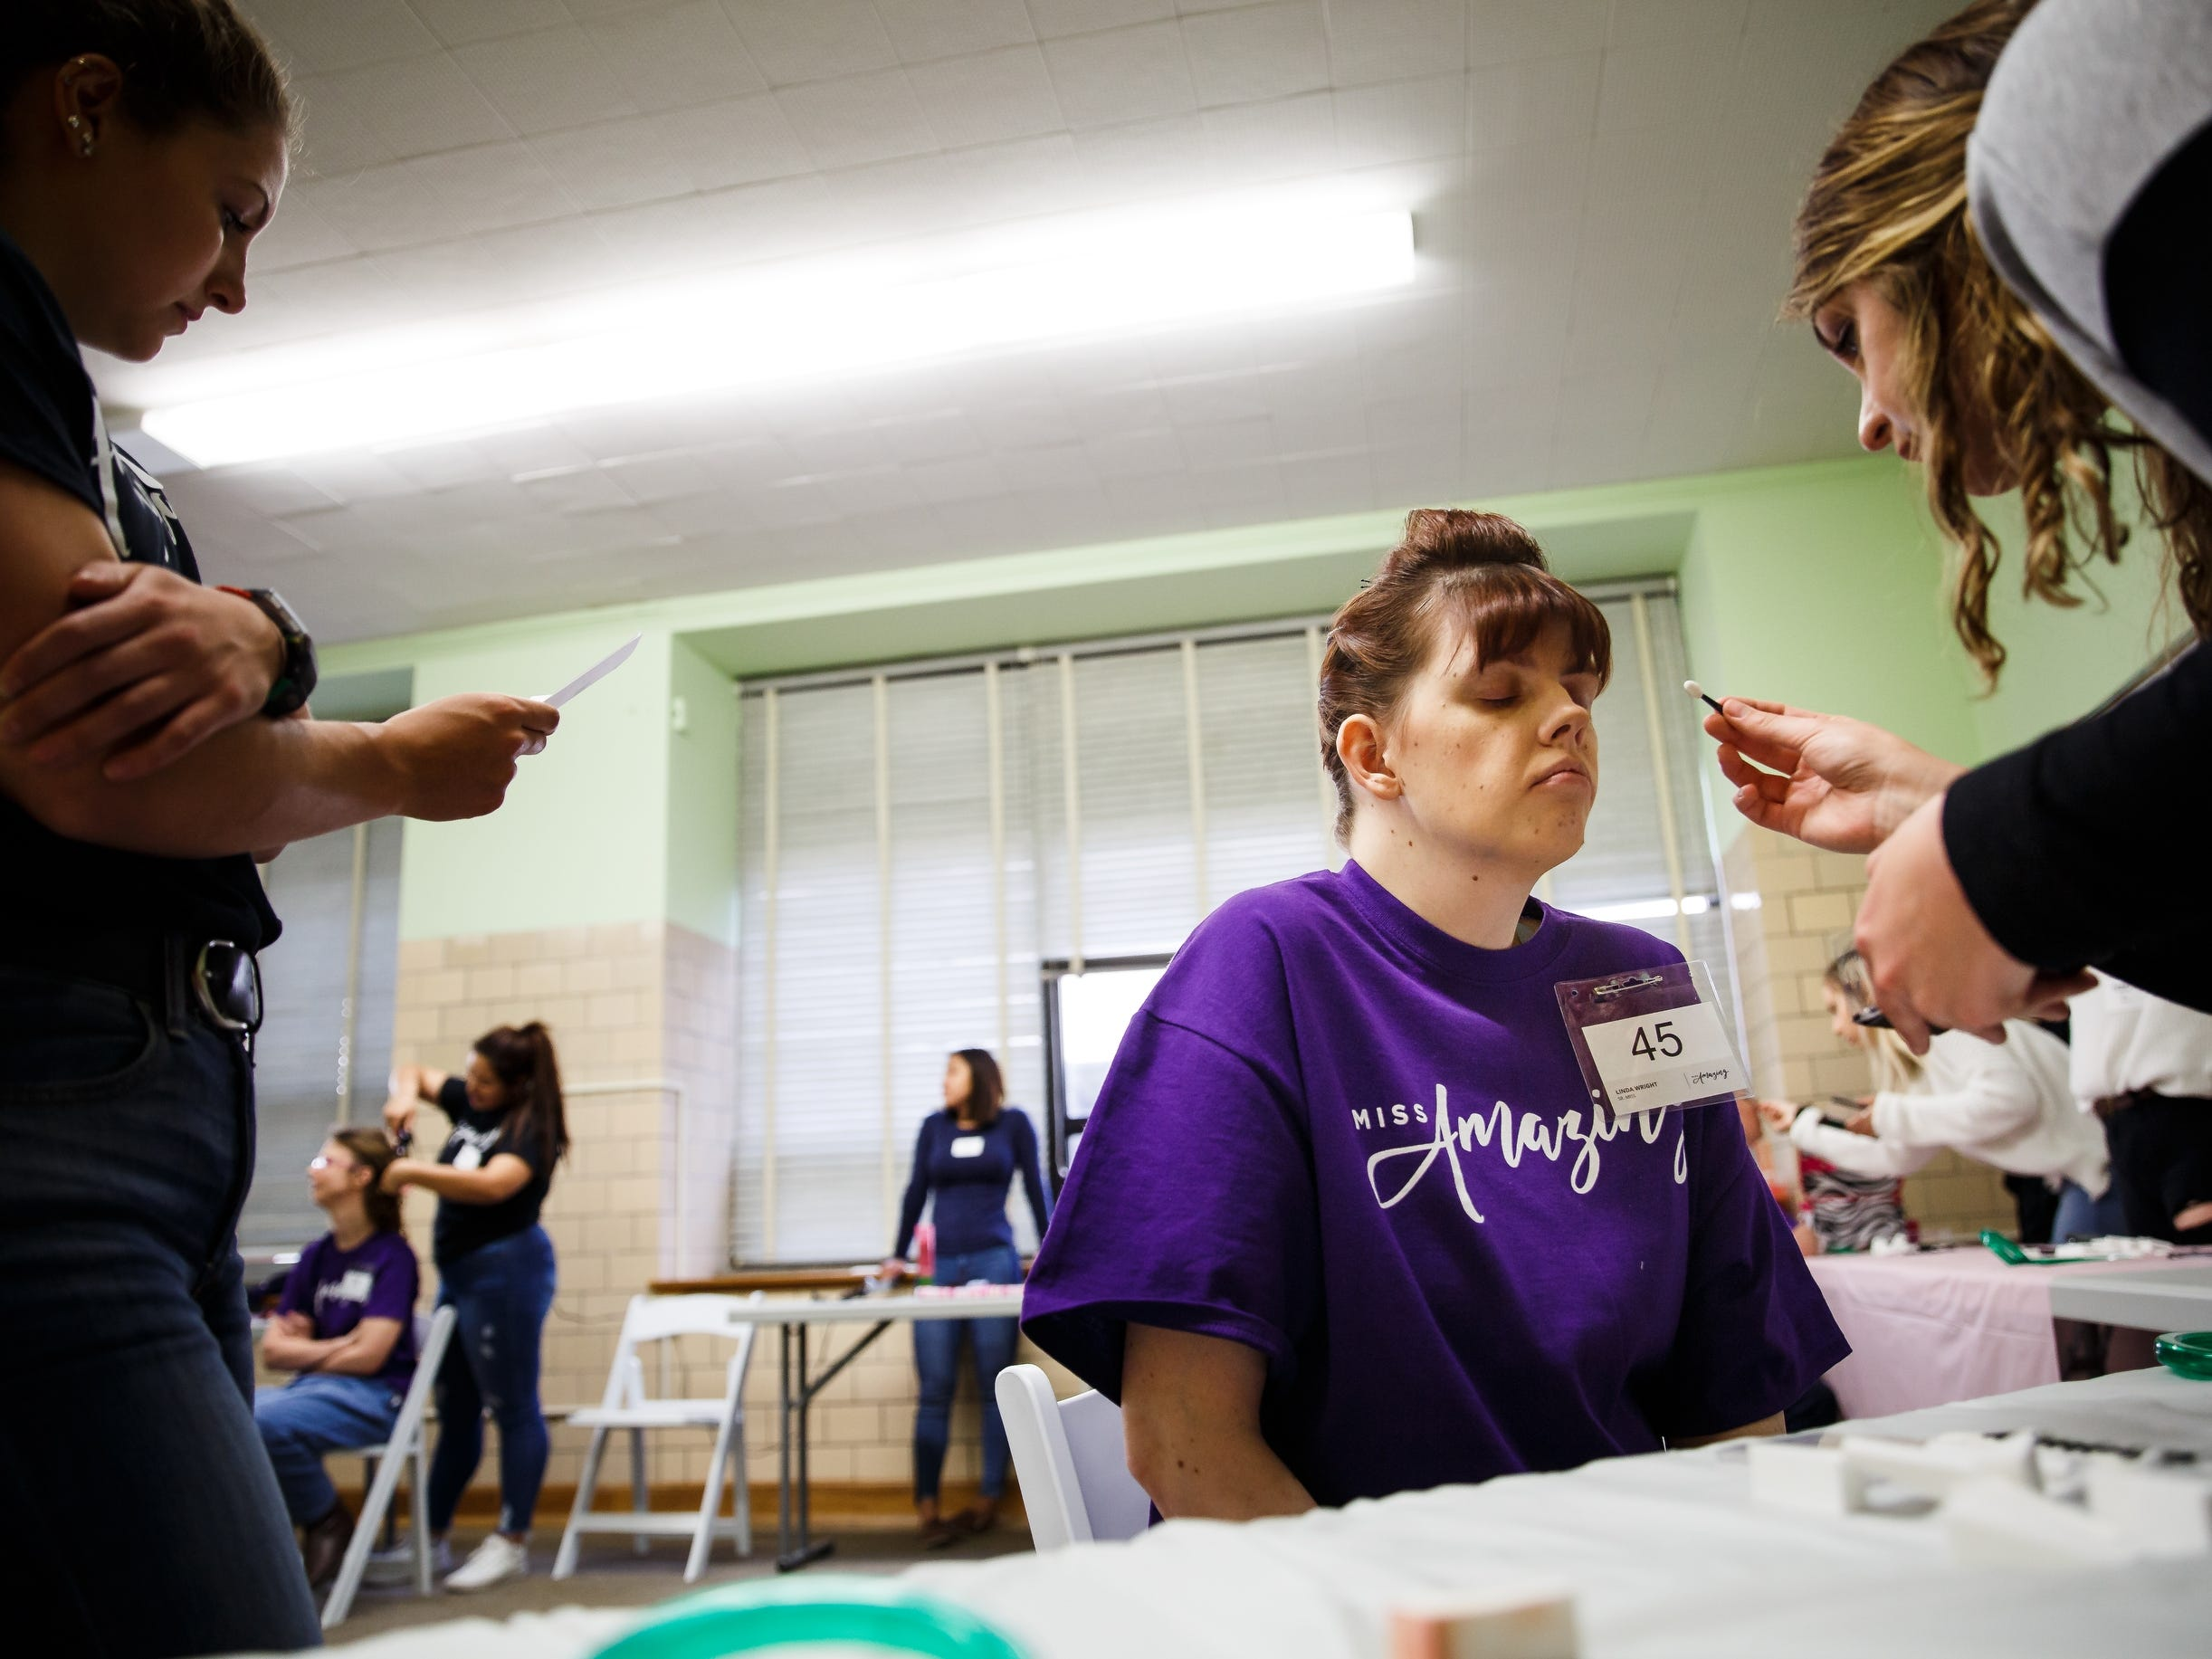 Linda Wright has her makeup done before the 2019 Miss Amazing pageant at Franklin Jr. High School on Saturday, April 13, 2019, in Des Moines.